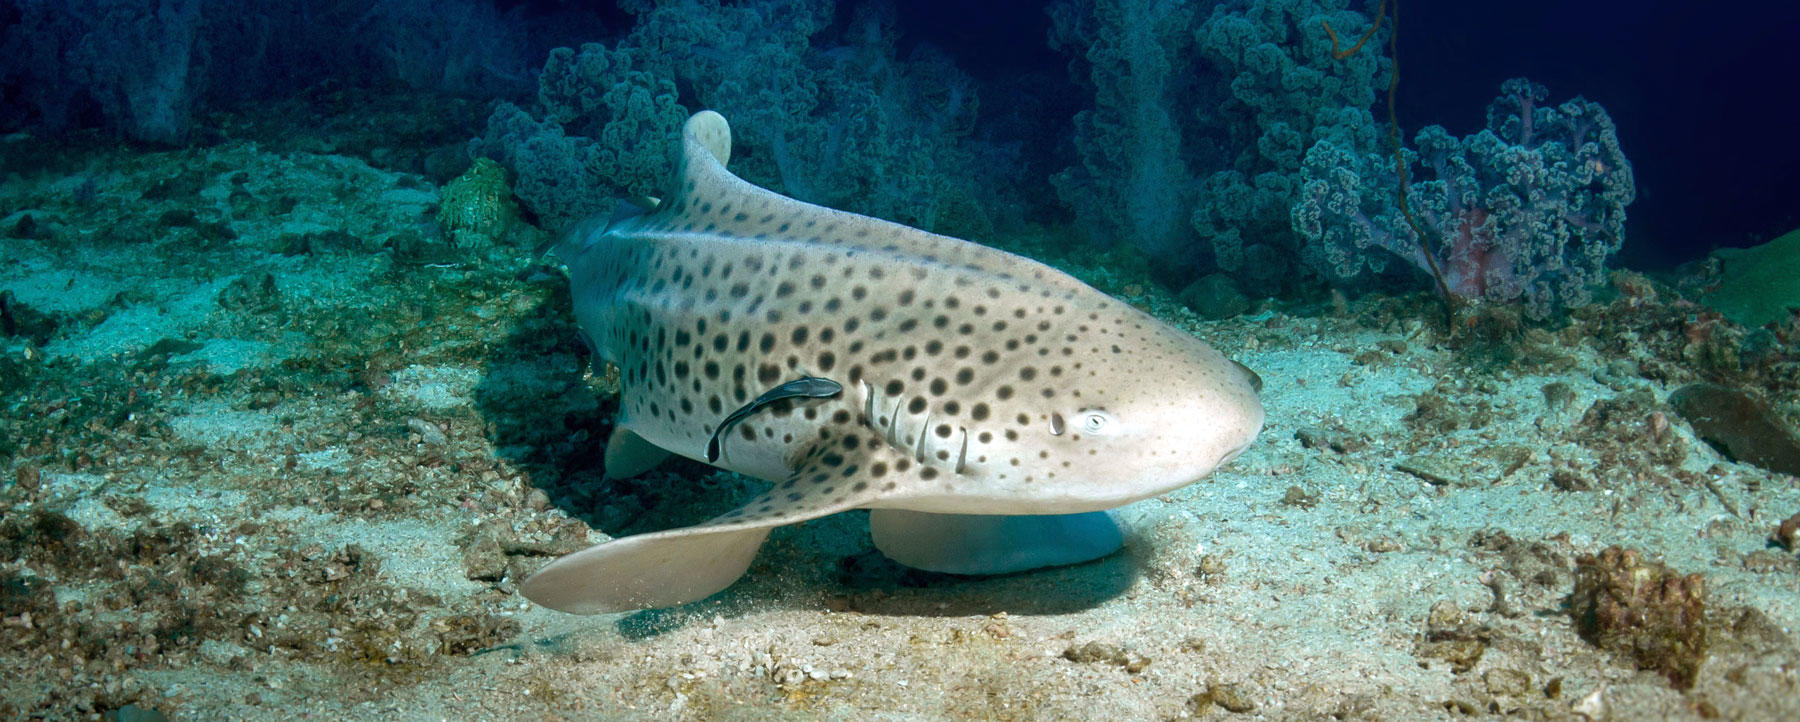 Leopard shark on the sea floor